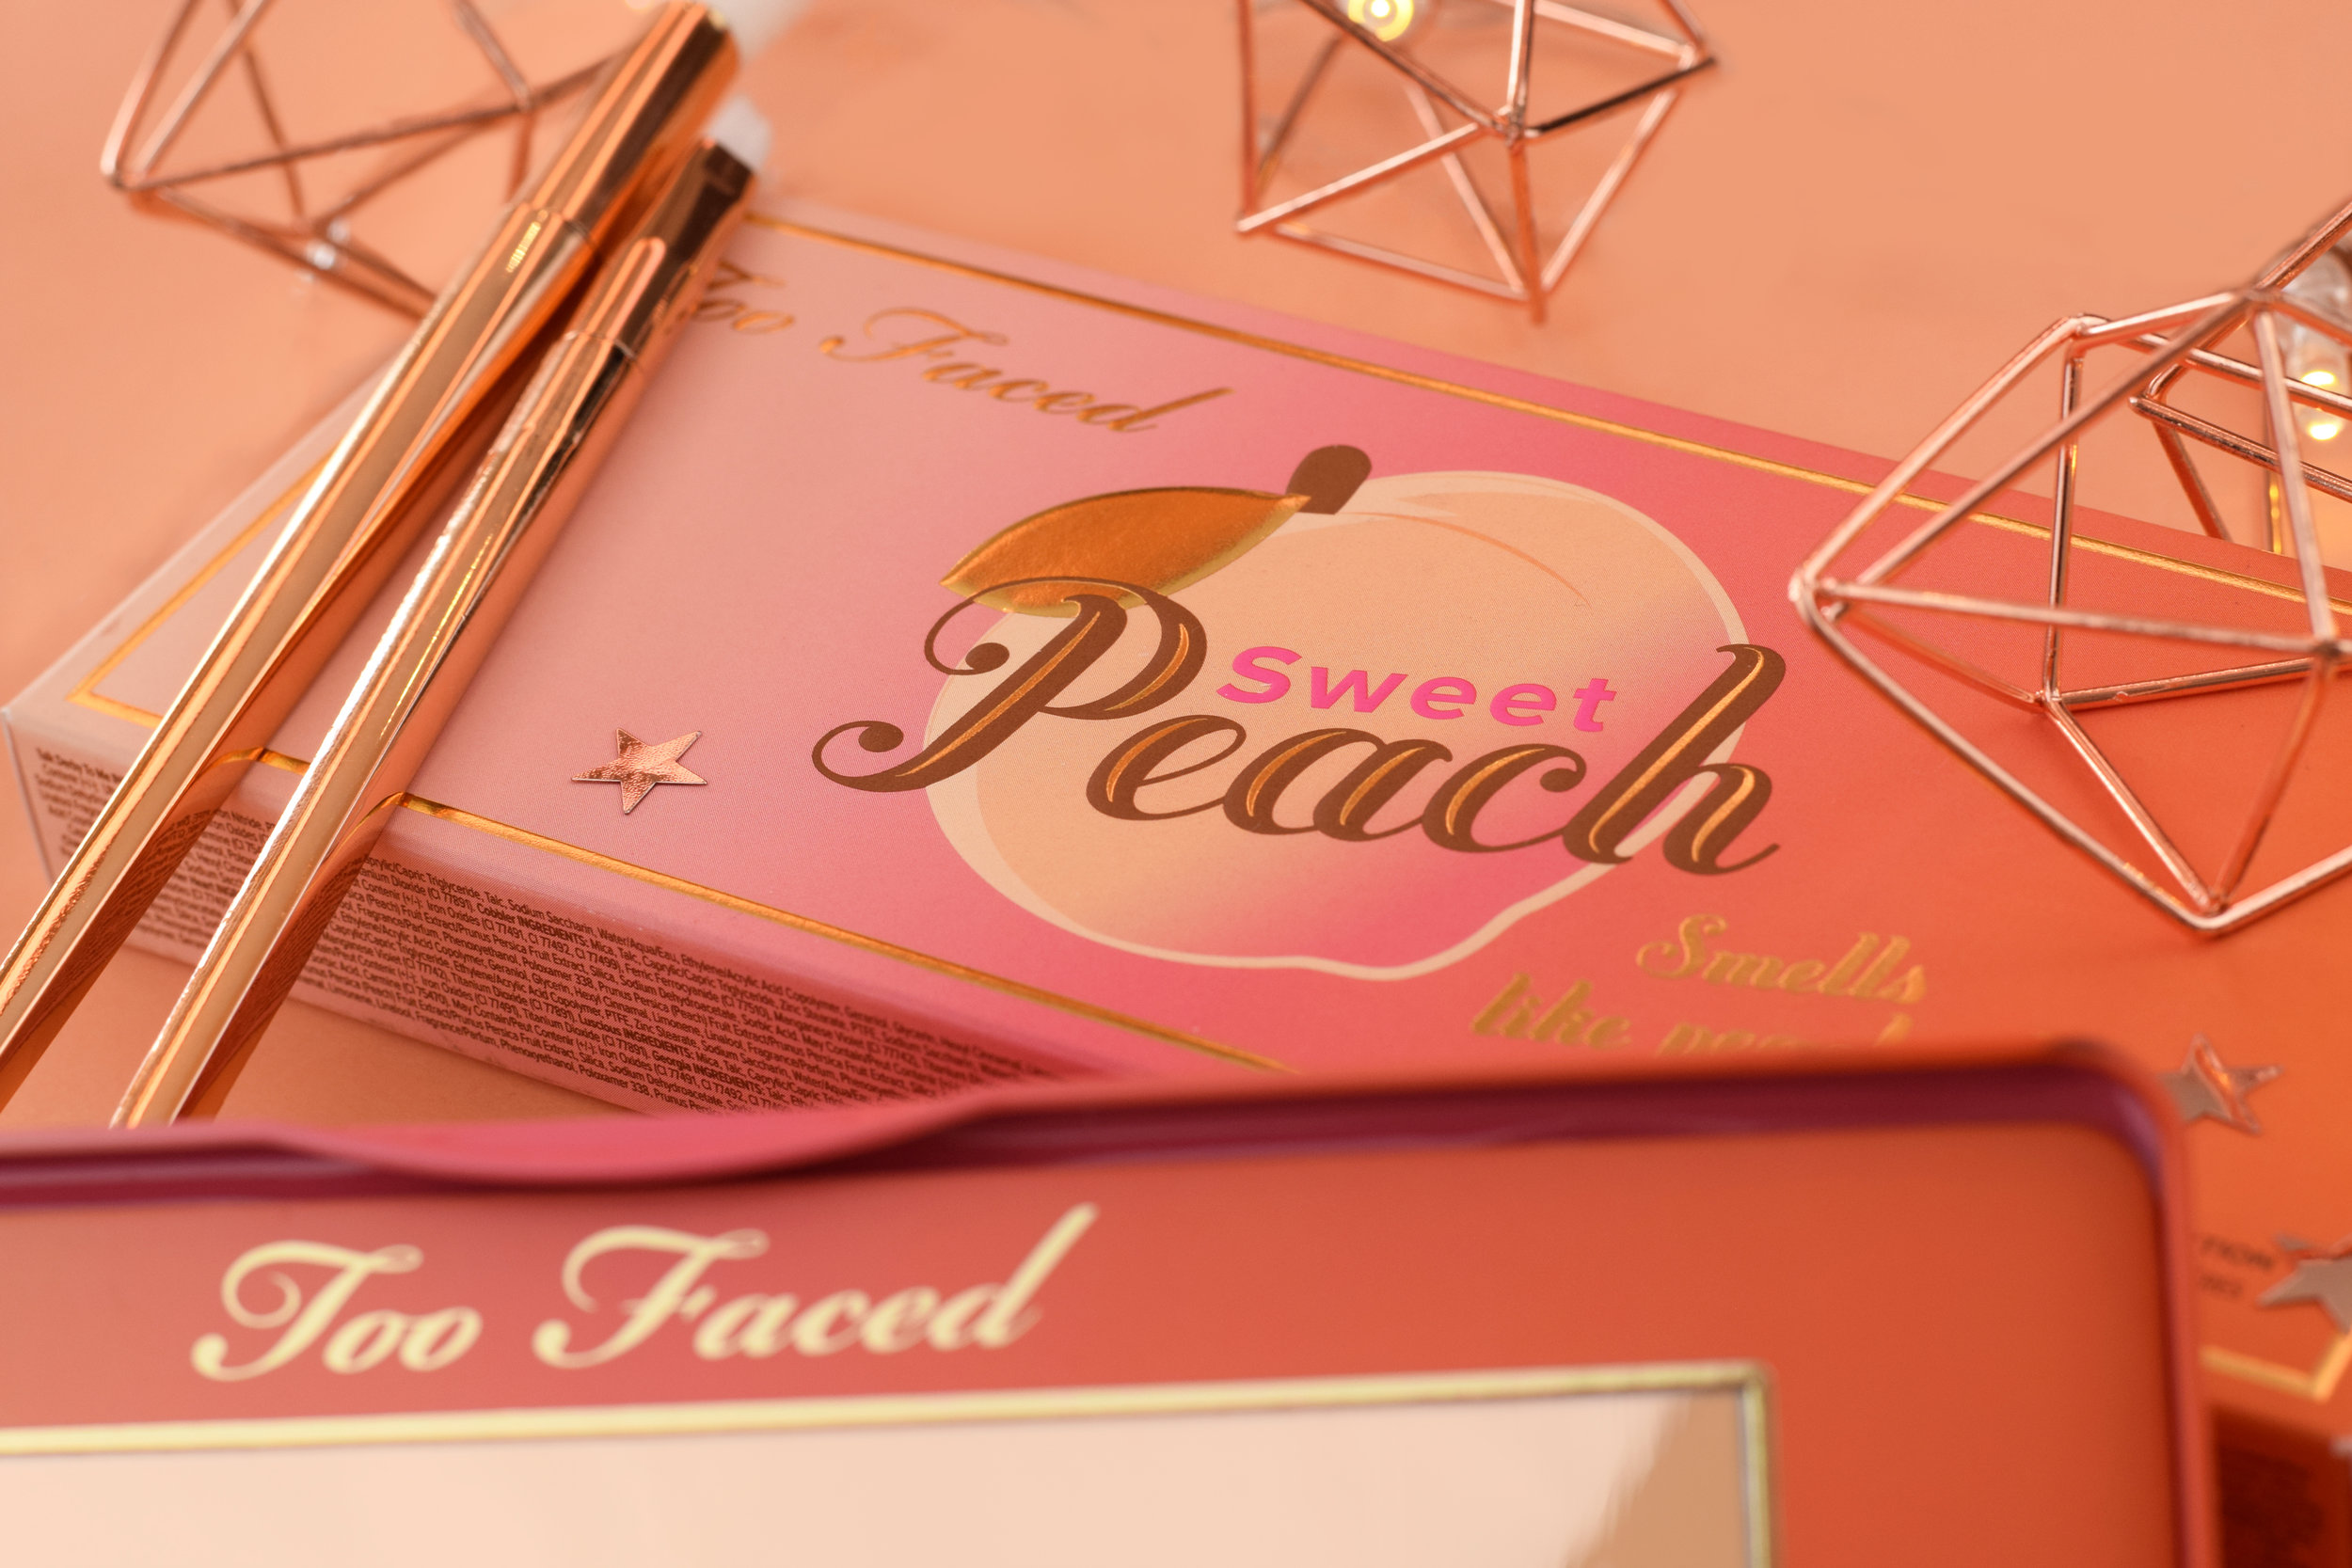 PeachTooFaced4.jpg